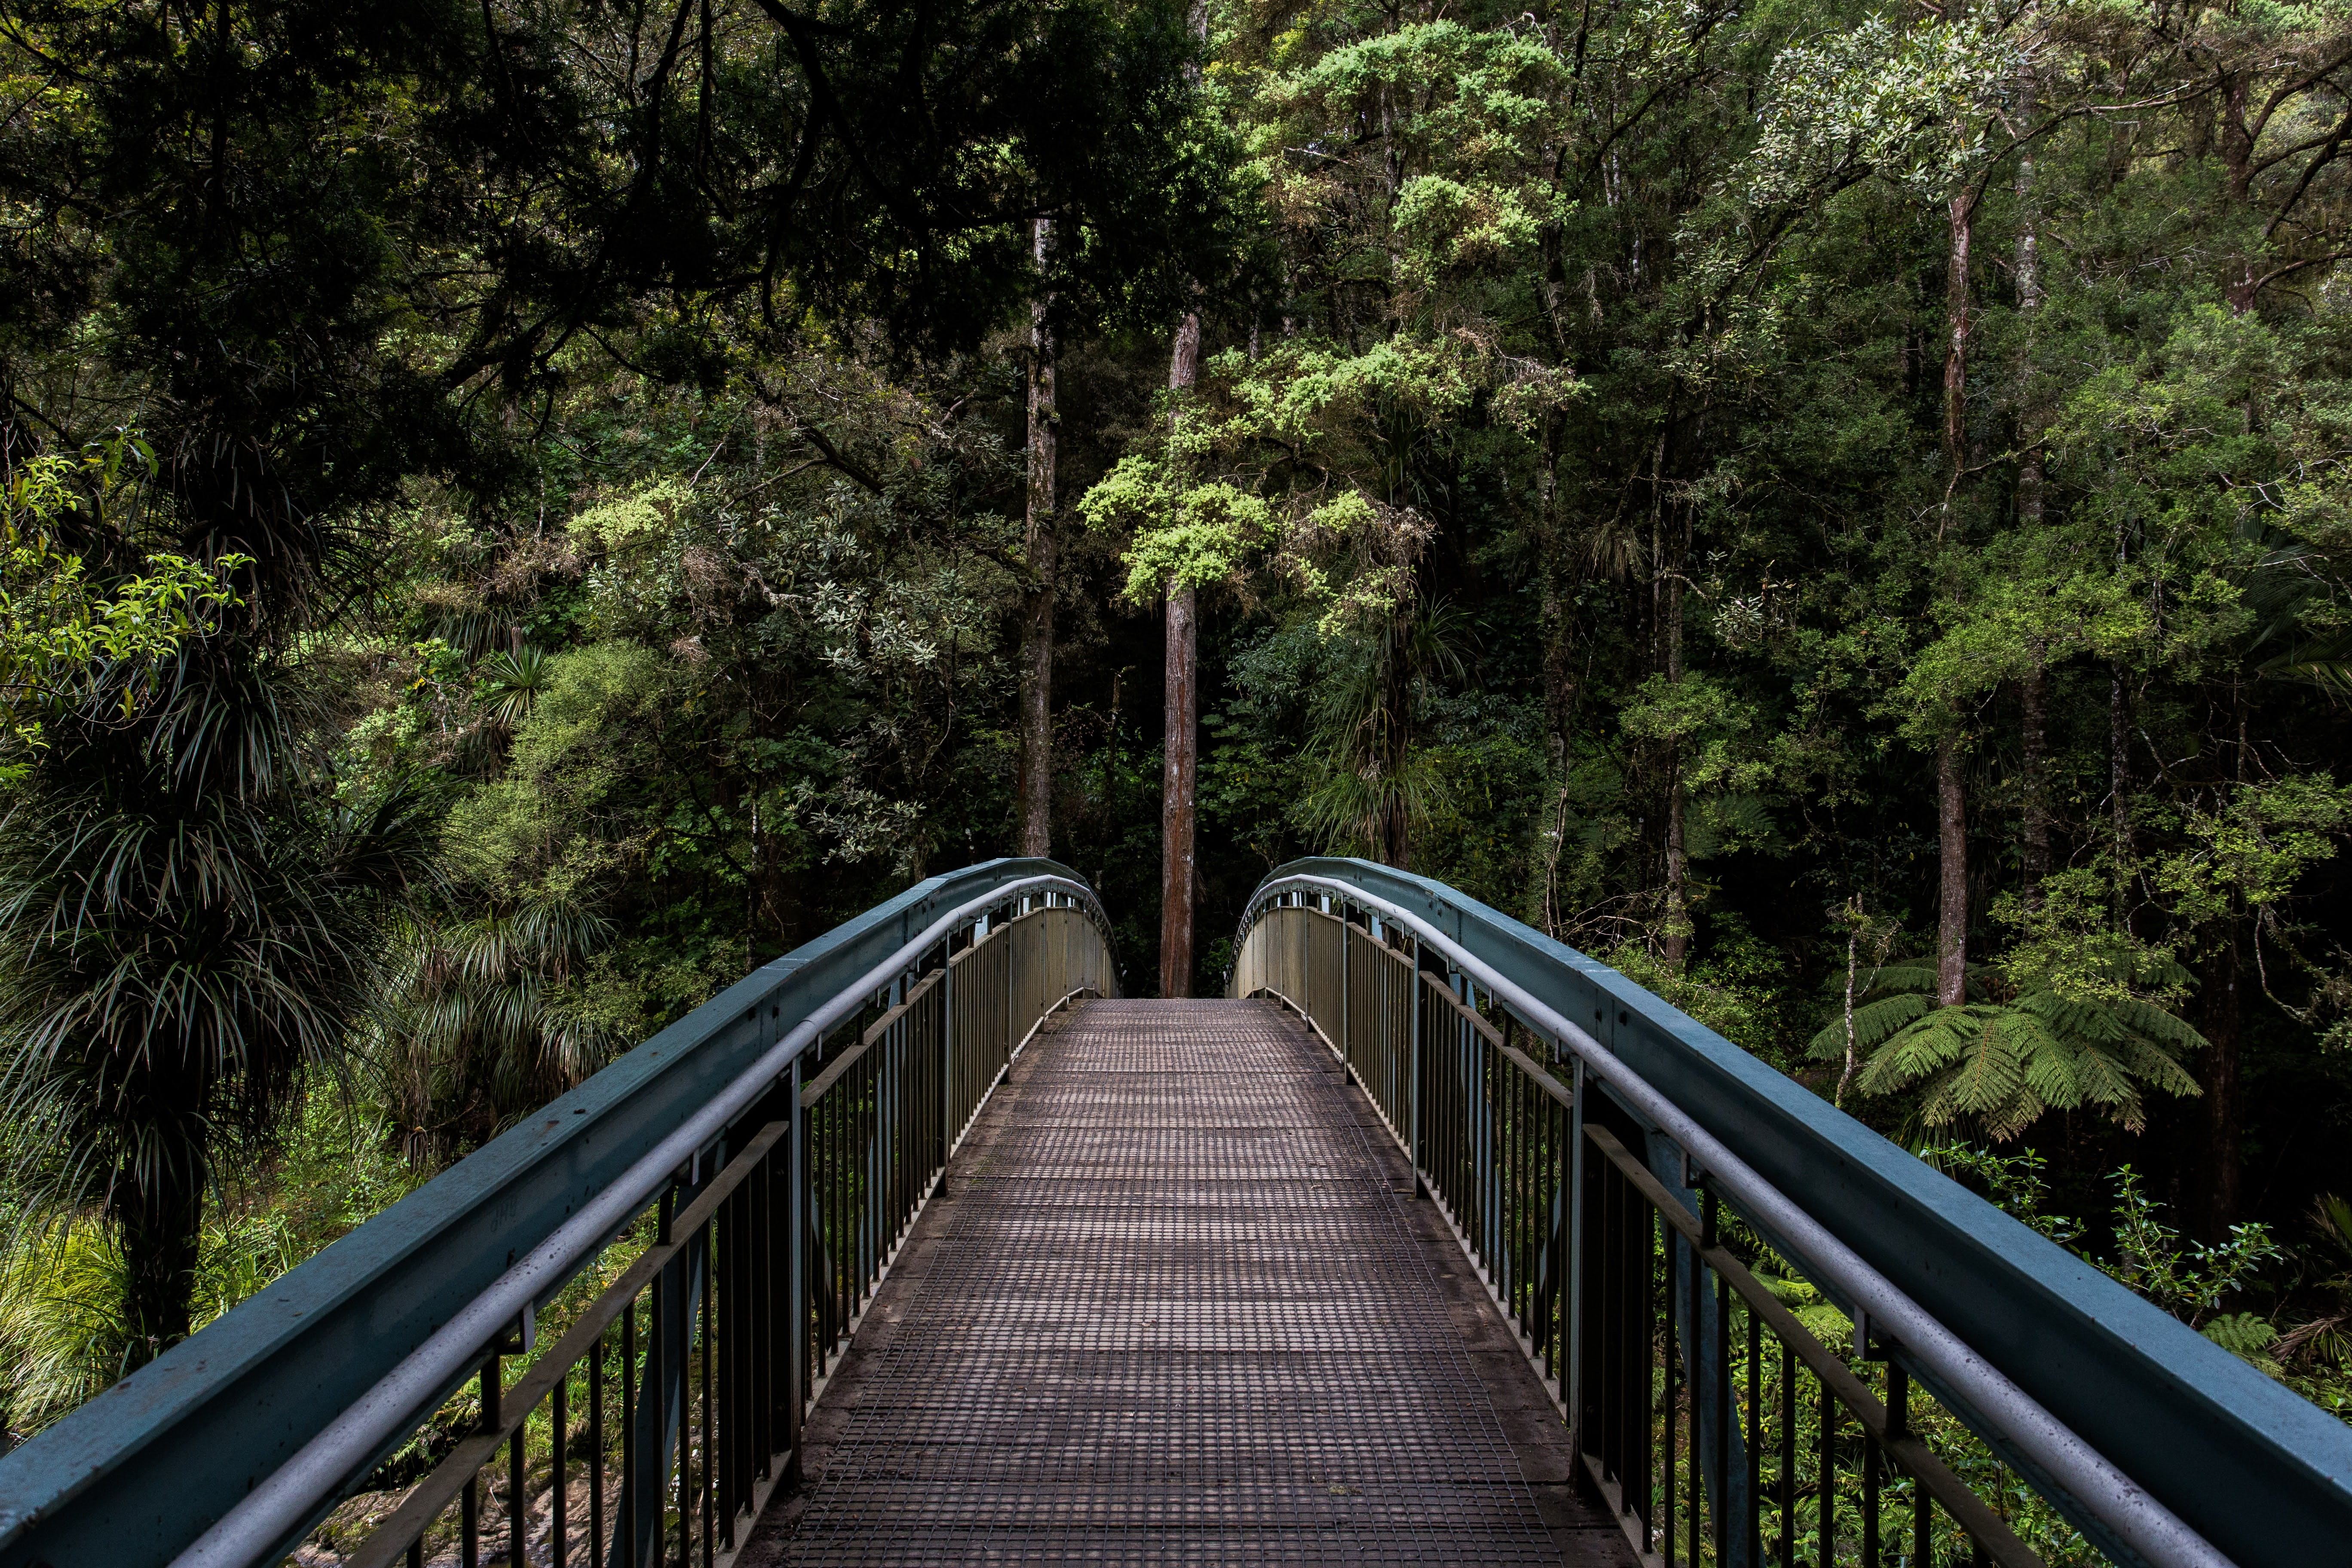 Bridge and a forest